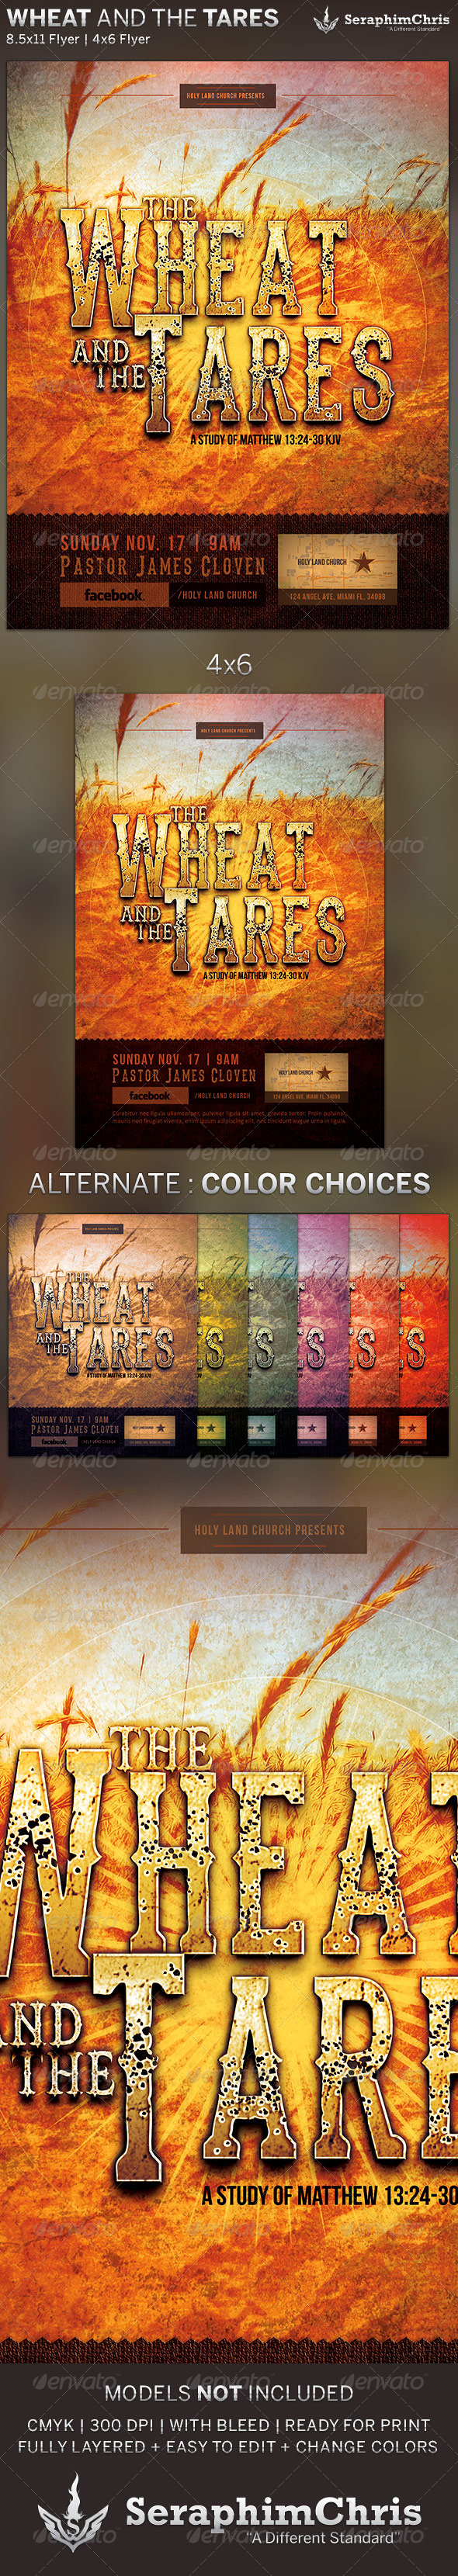 Wheat and the Tares: Church Flyer Template - Church Flyers